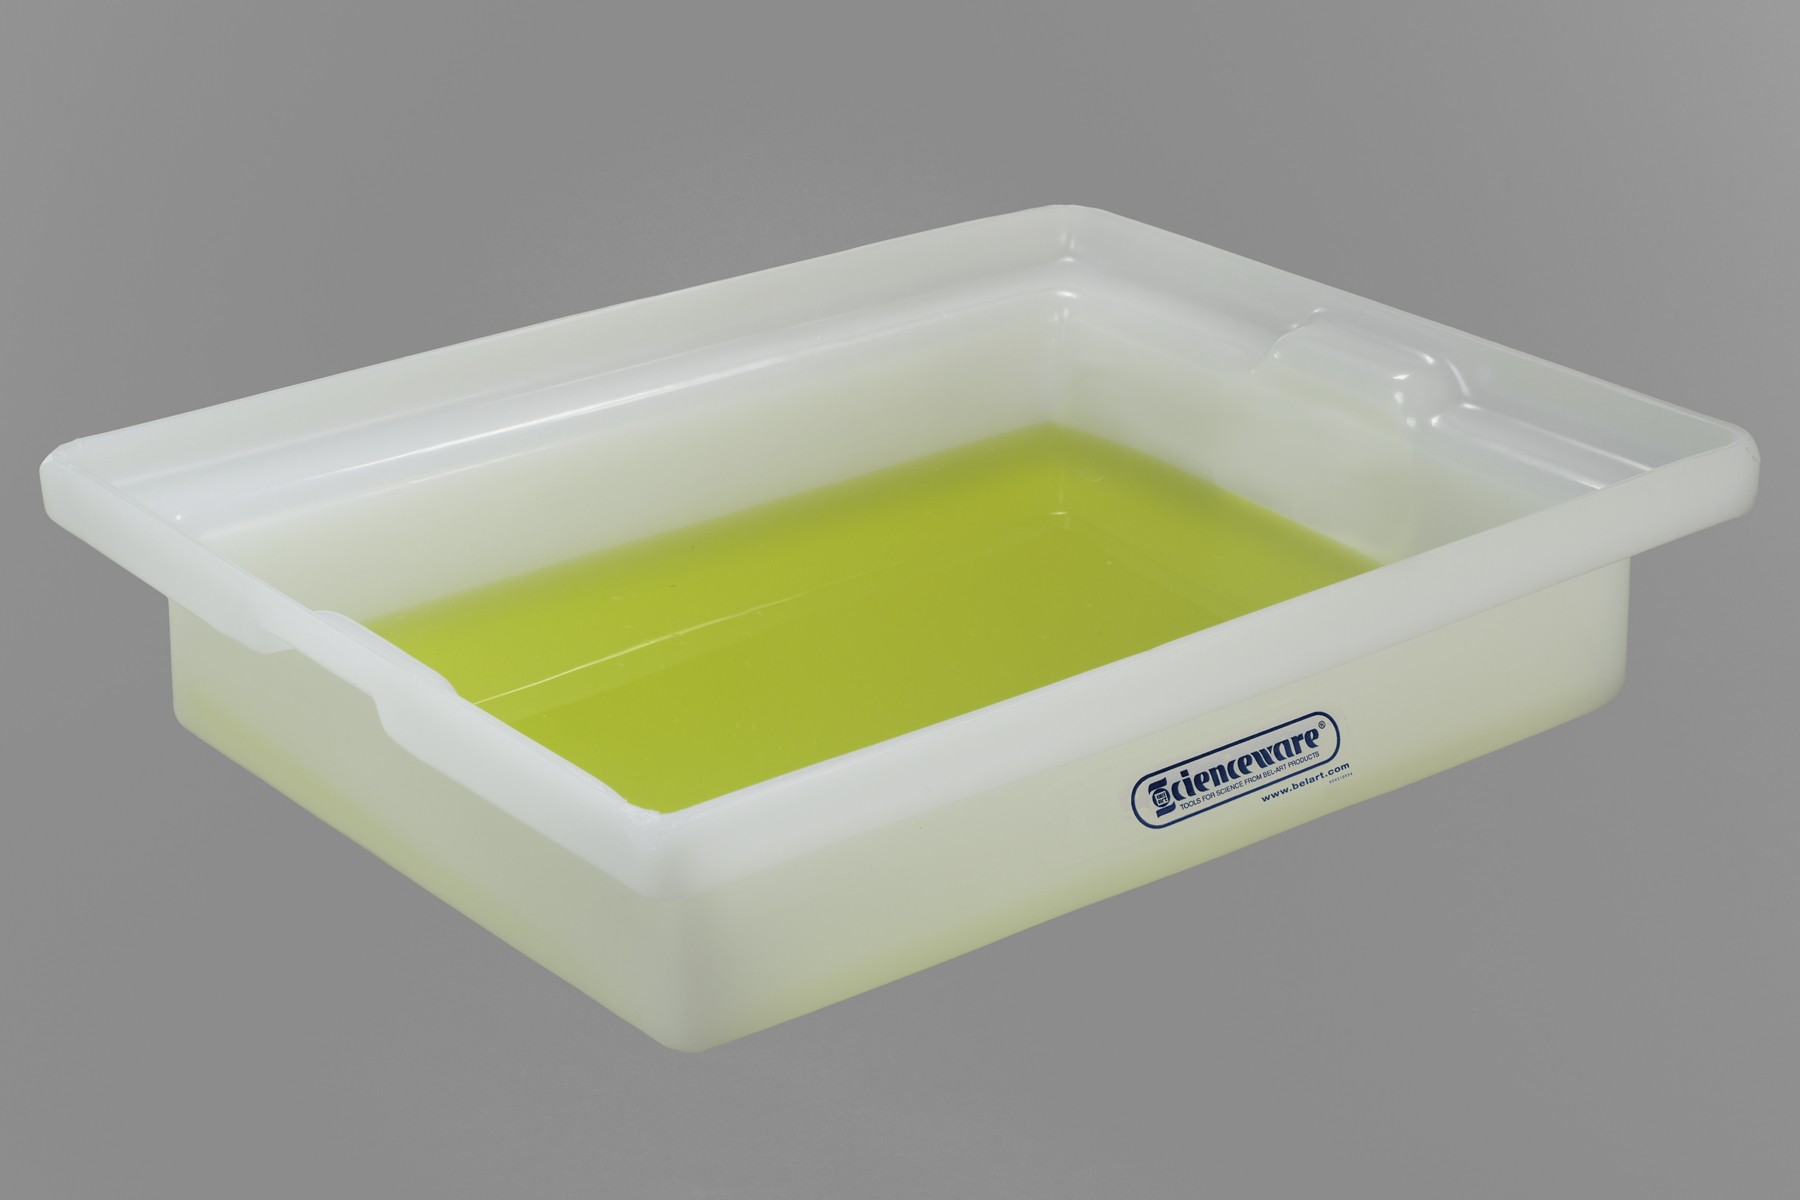 F16295-0000 Bel-Art General Purpose Polyethylene Tray with Faucet; 17/½ x 23/½ x 6 in.